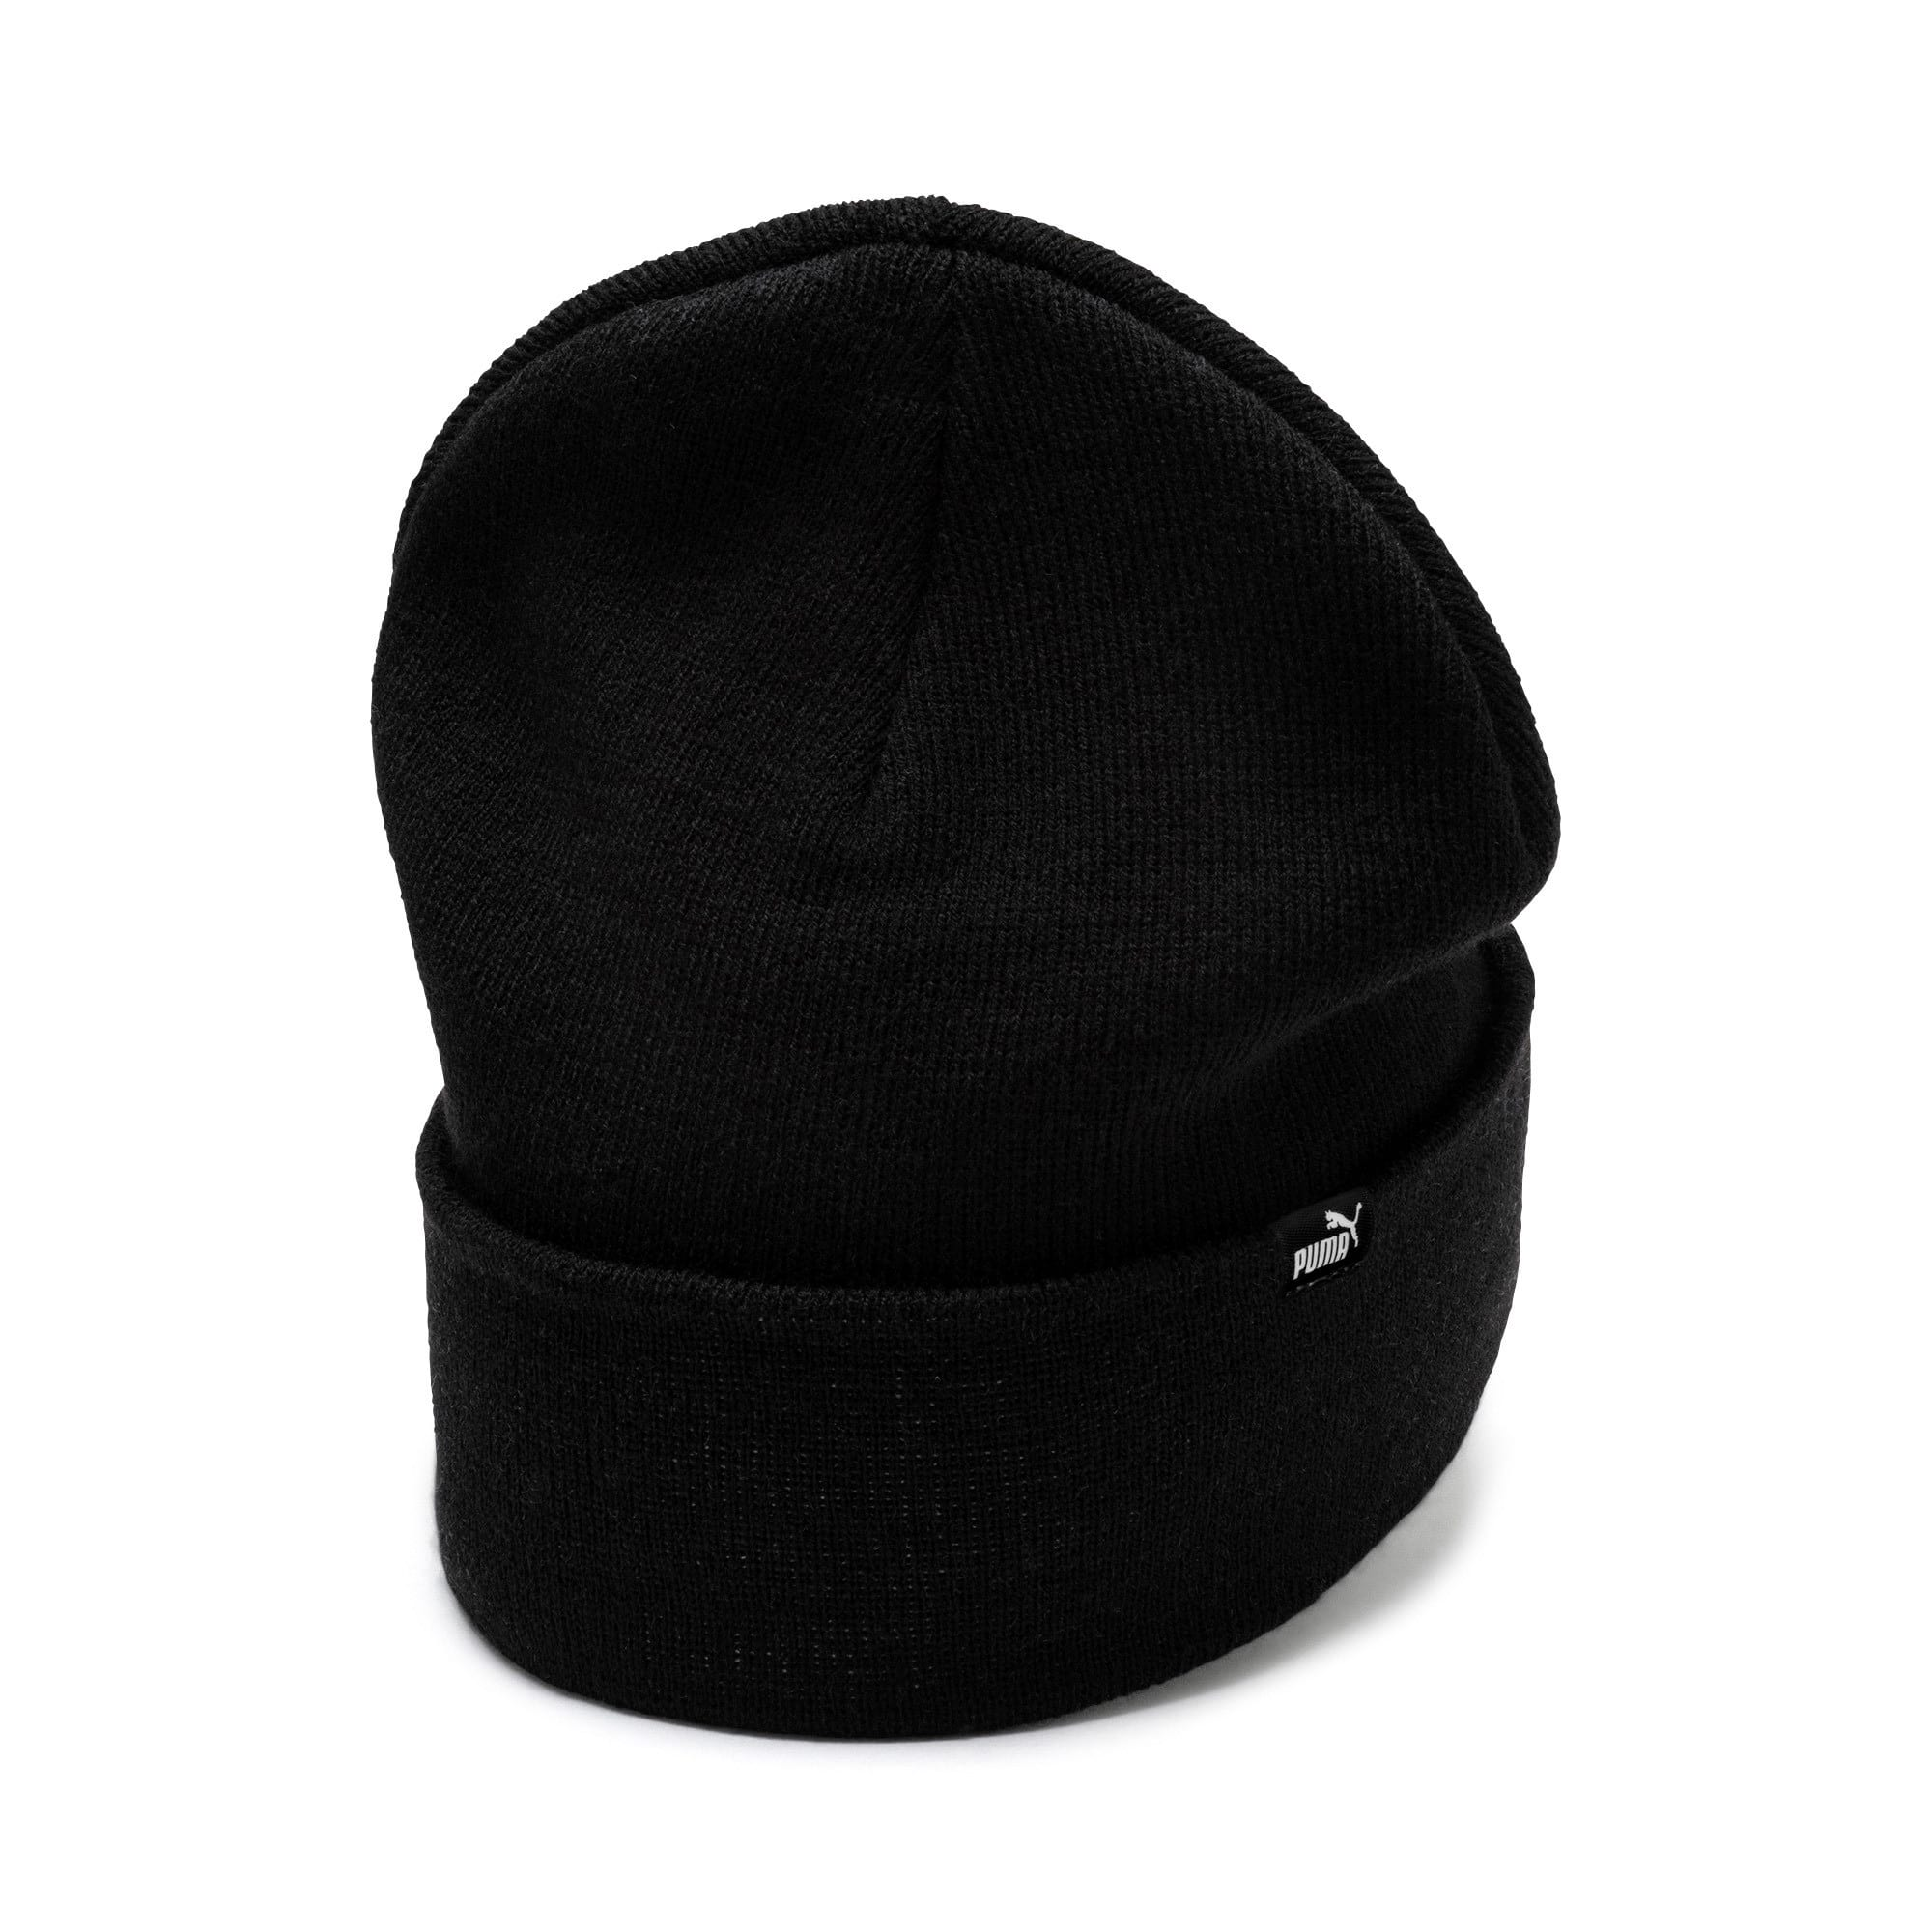 Thumbnail 2 of Mid Fit Beanie, Puma Black, medium